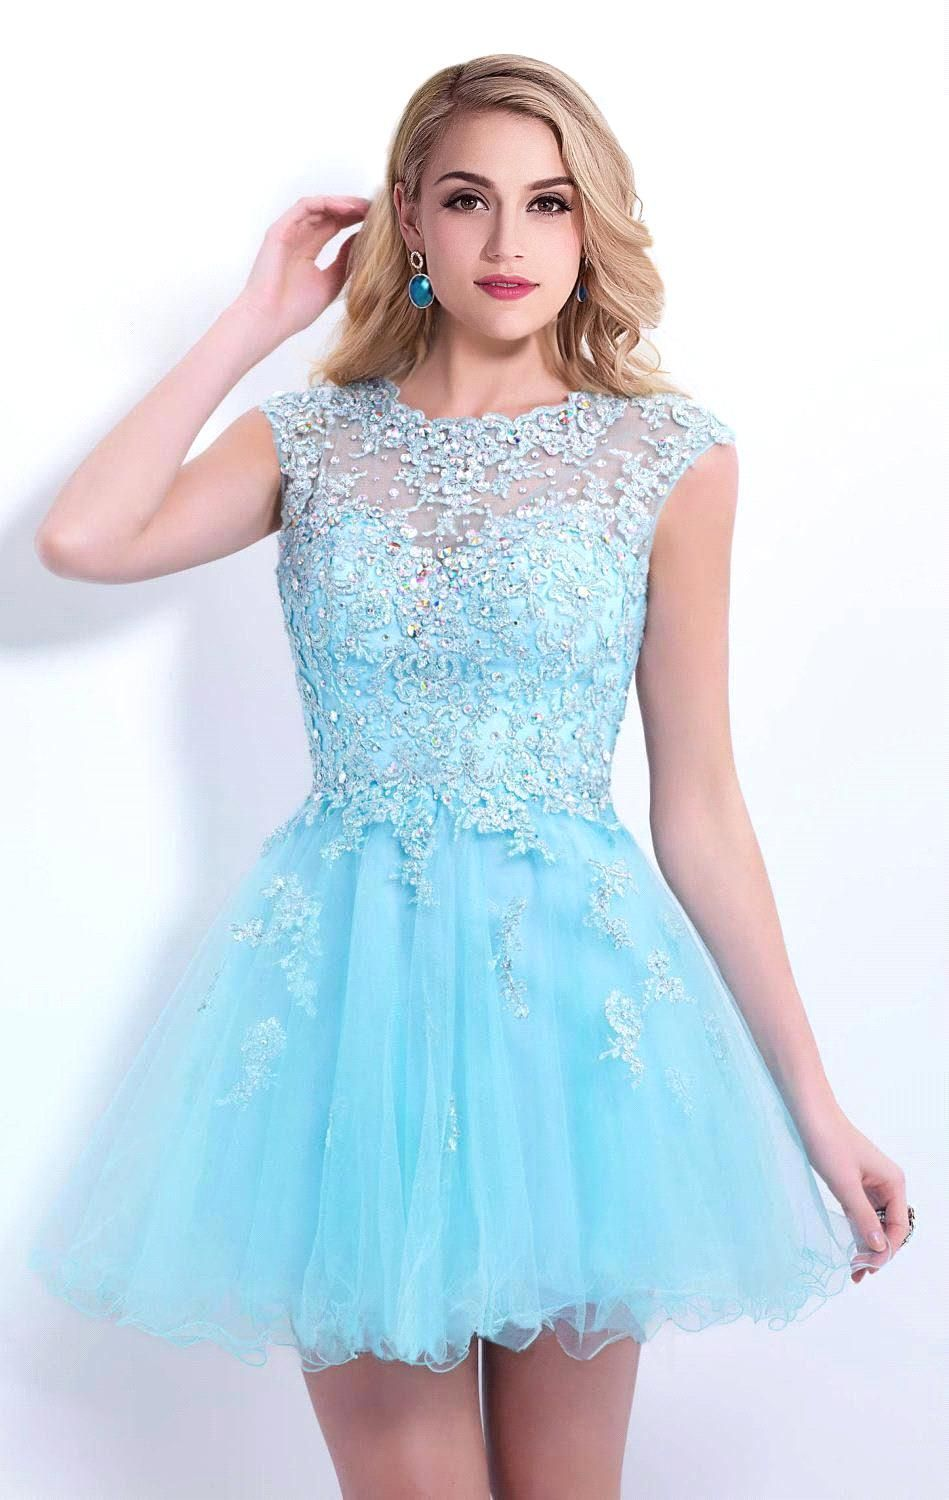 6834f2cb1cf Hot Sale Cap Sleeve Blue Beaded Lace Short Homecoming Dresses 2015 8 Grade  Graduation Dresses For Girls Open Back Party Gown